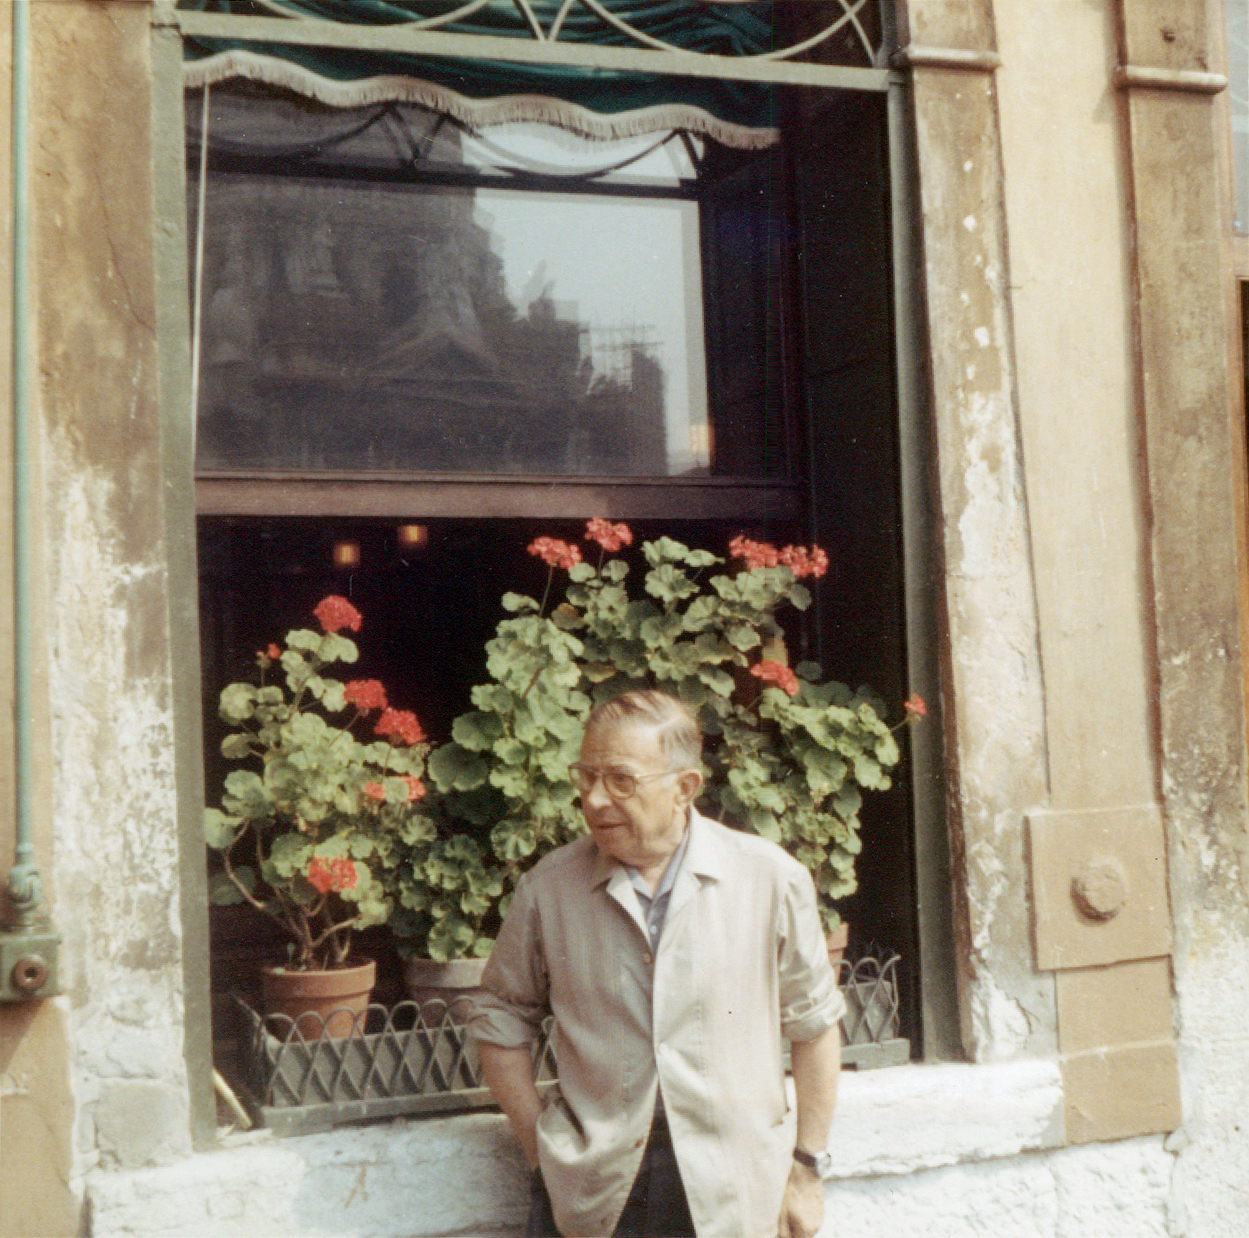 Jean-Paul Sartre in Venice, 1967 (via    Wikipedia   )